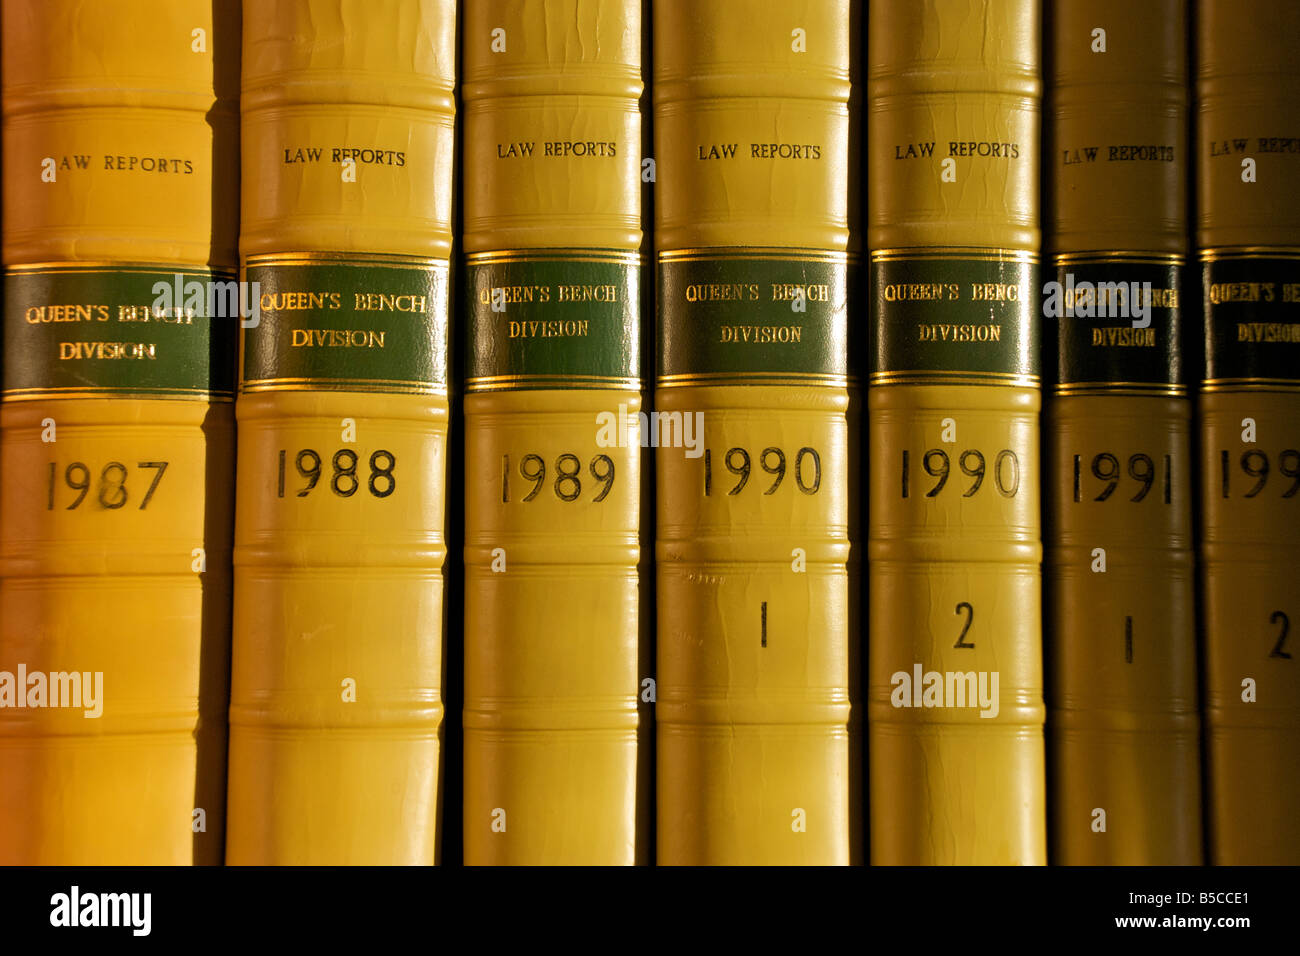 Queen's bench division law reports - Stock Image